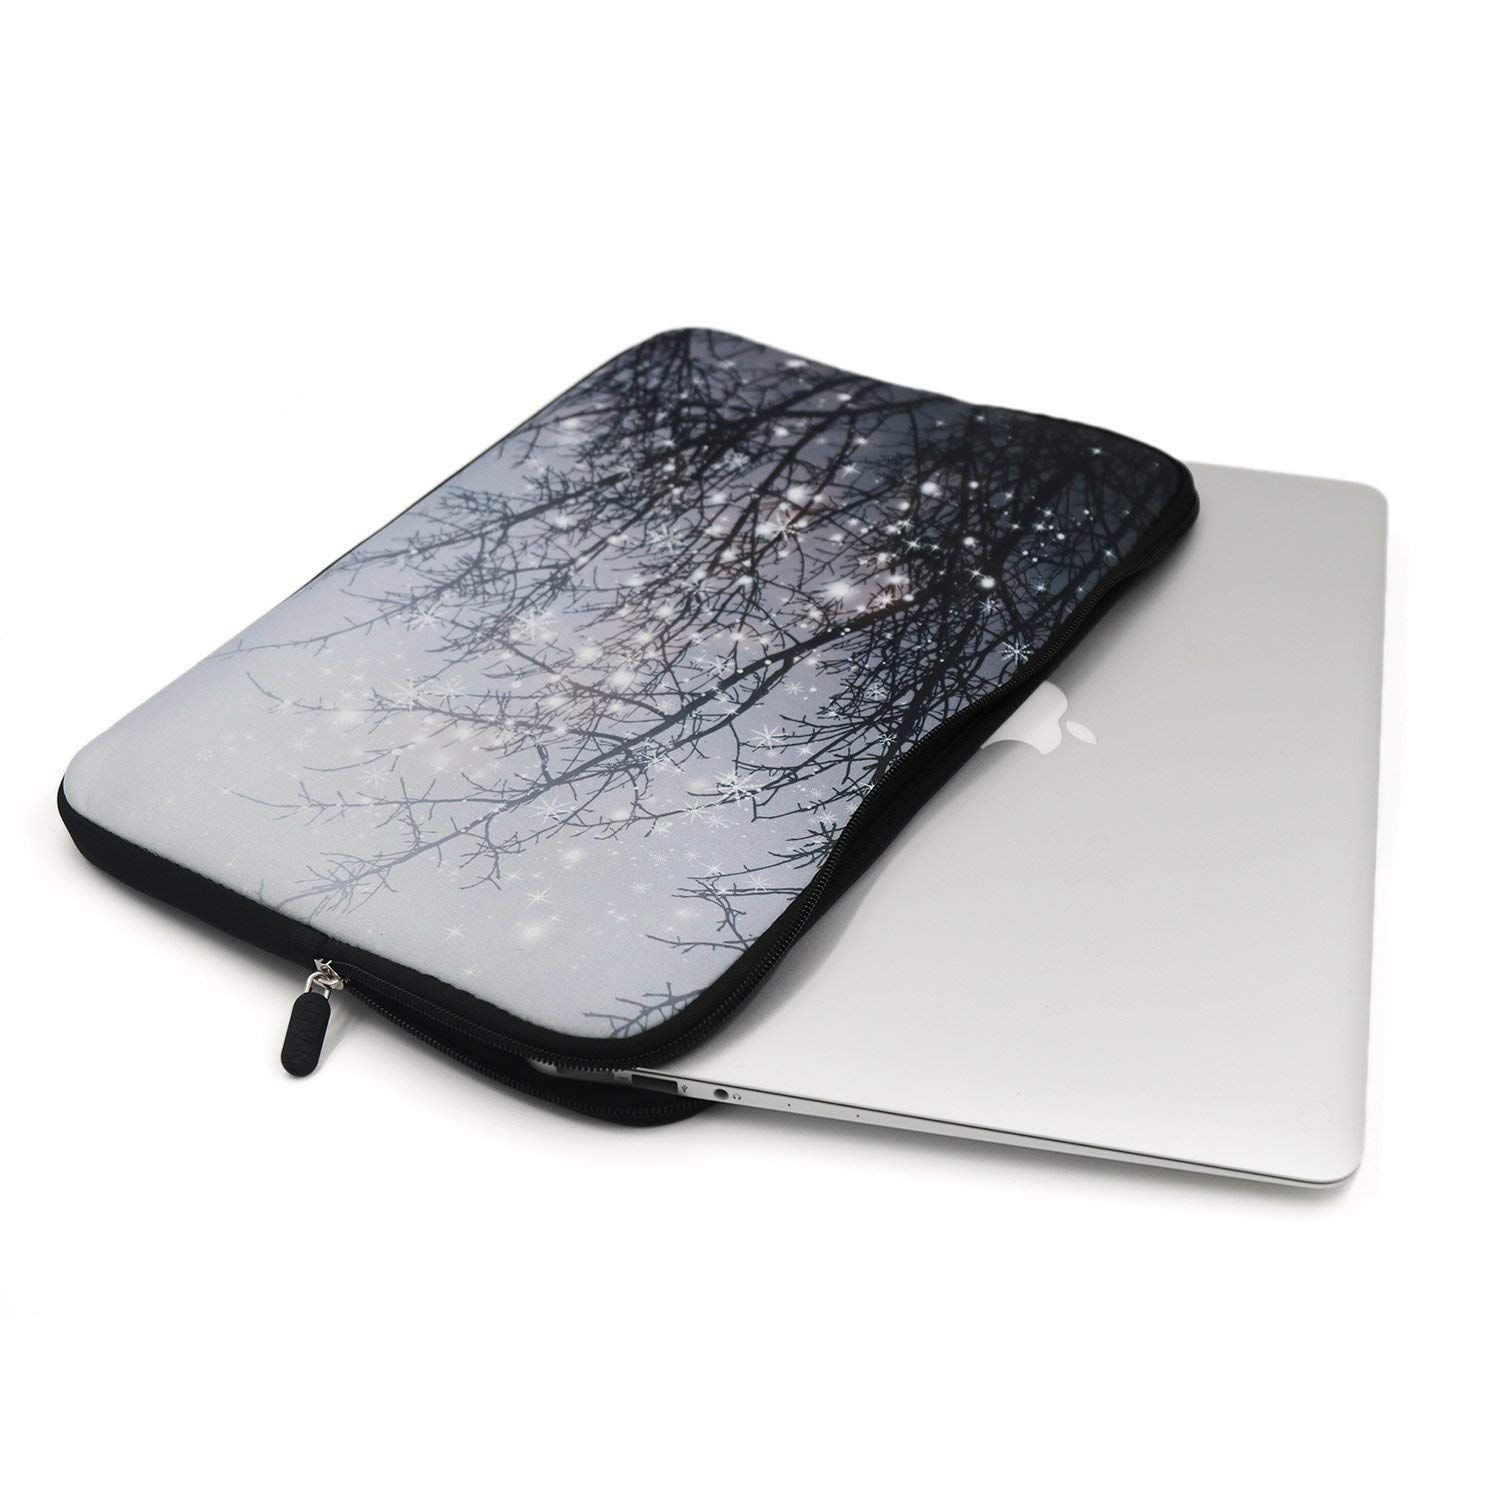 1213.3 Inch Laptop Sleeve Protective Notebook Bag Cover